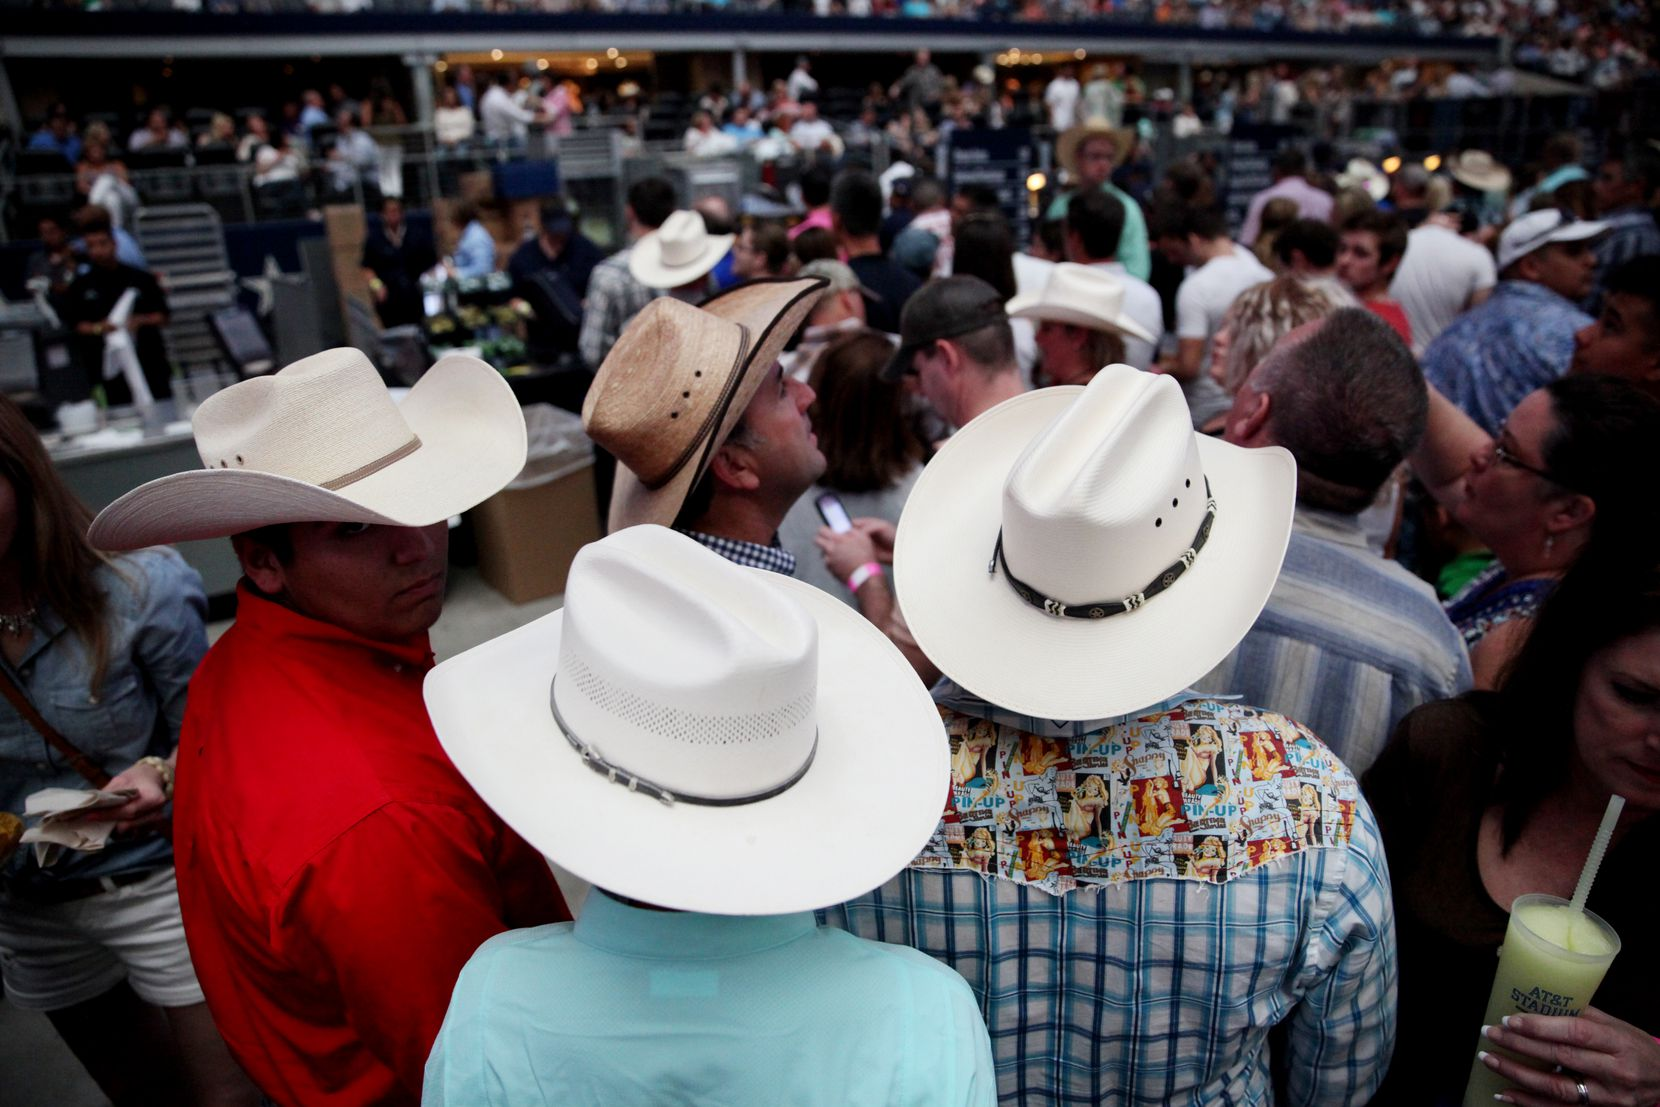 George Strait fans find their seats before Strait plays the last show of his final tour at AT&T Stadium in Arlington, Texas on June 7, 2014. (Andy Jacobsohn/The Dallas Morning News)